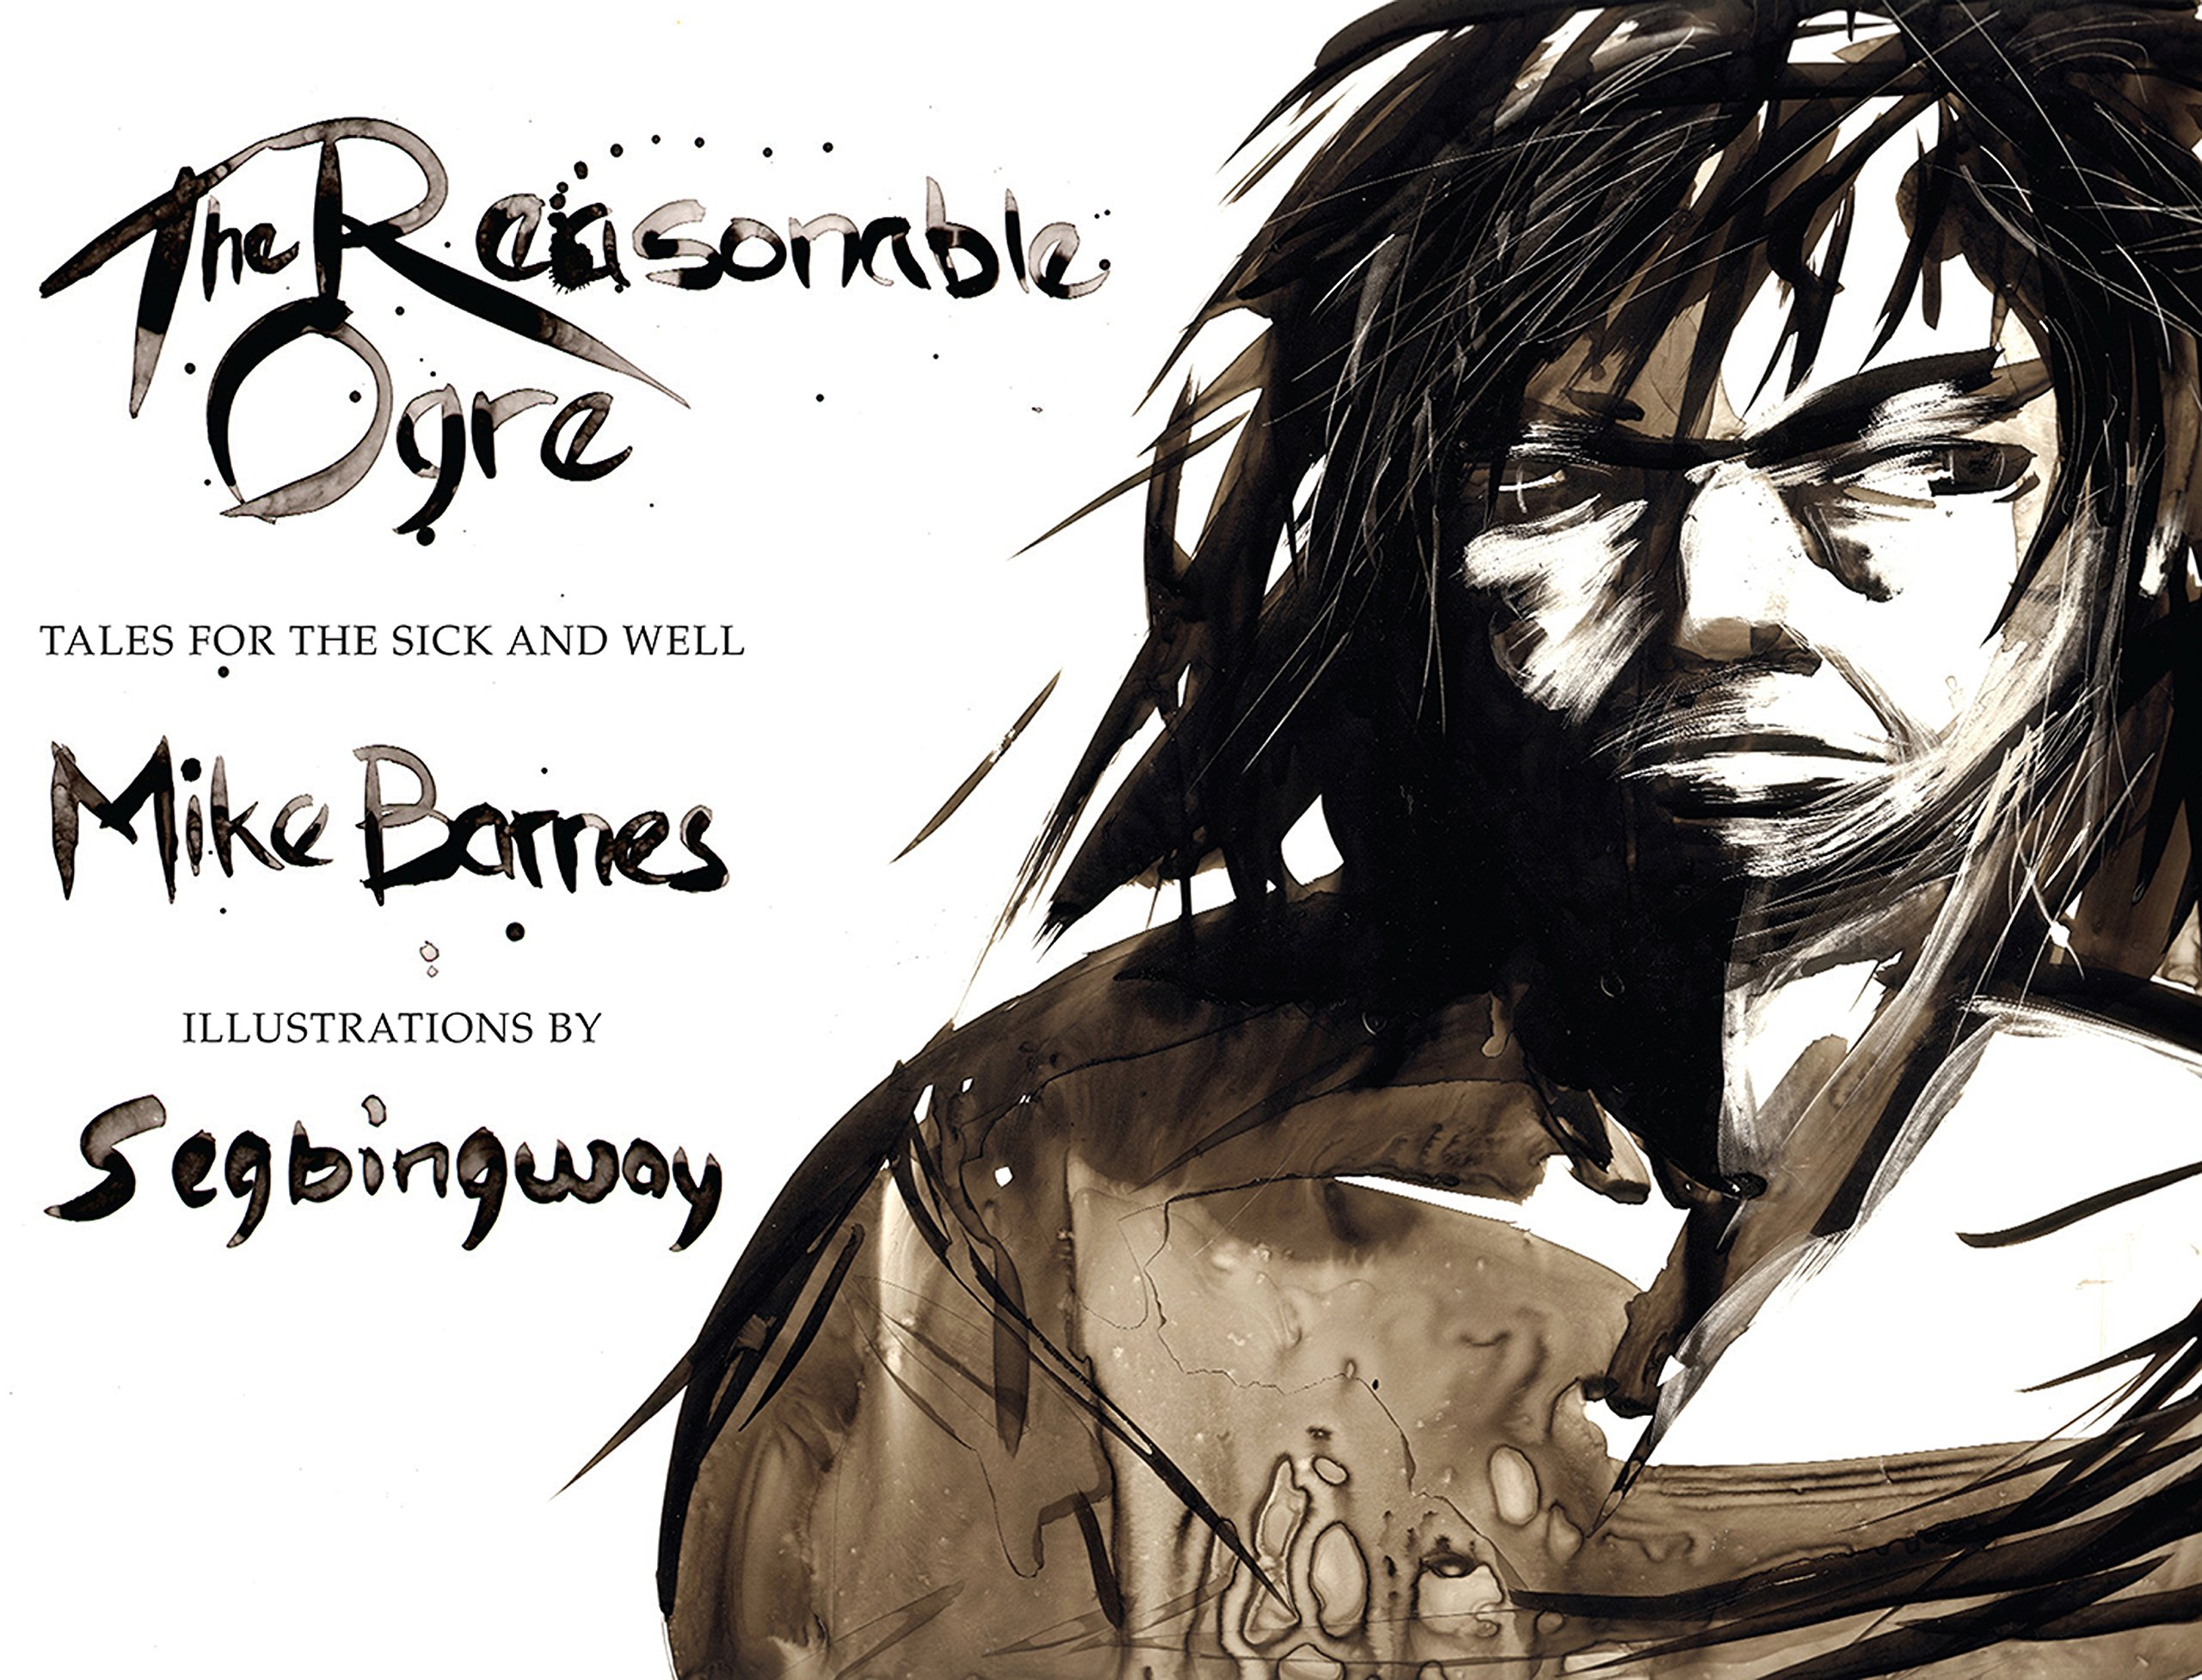 The Reasonable Ogre: Tales for the Sick and Well pdf epub